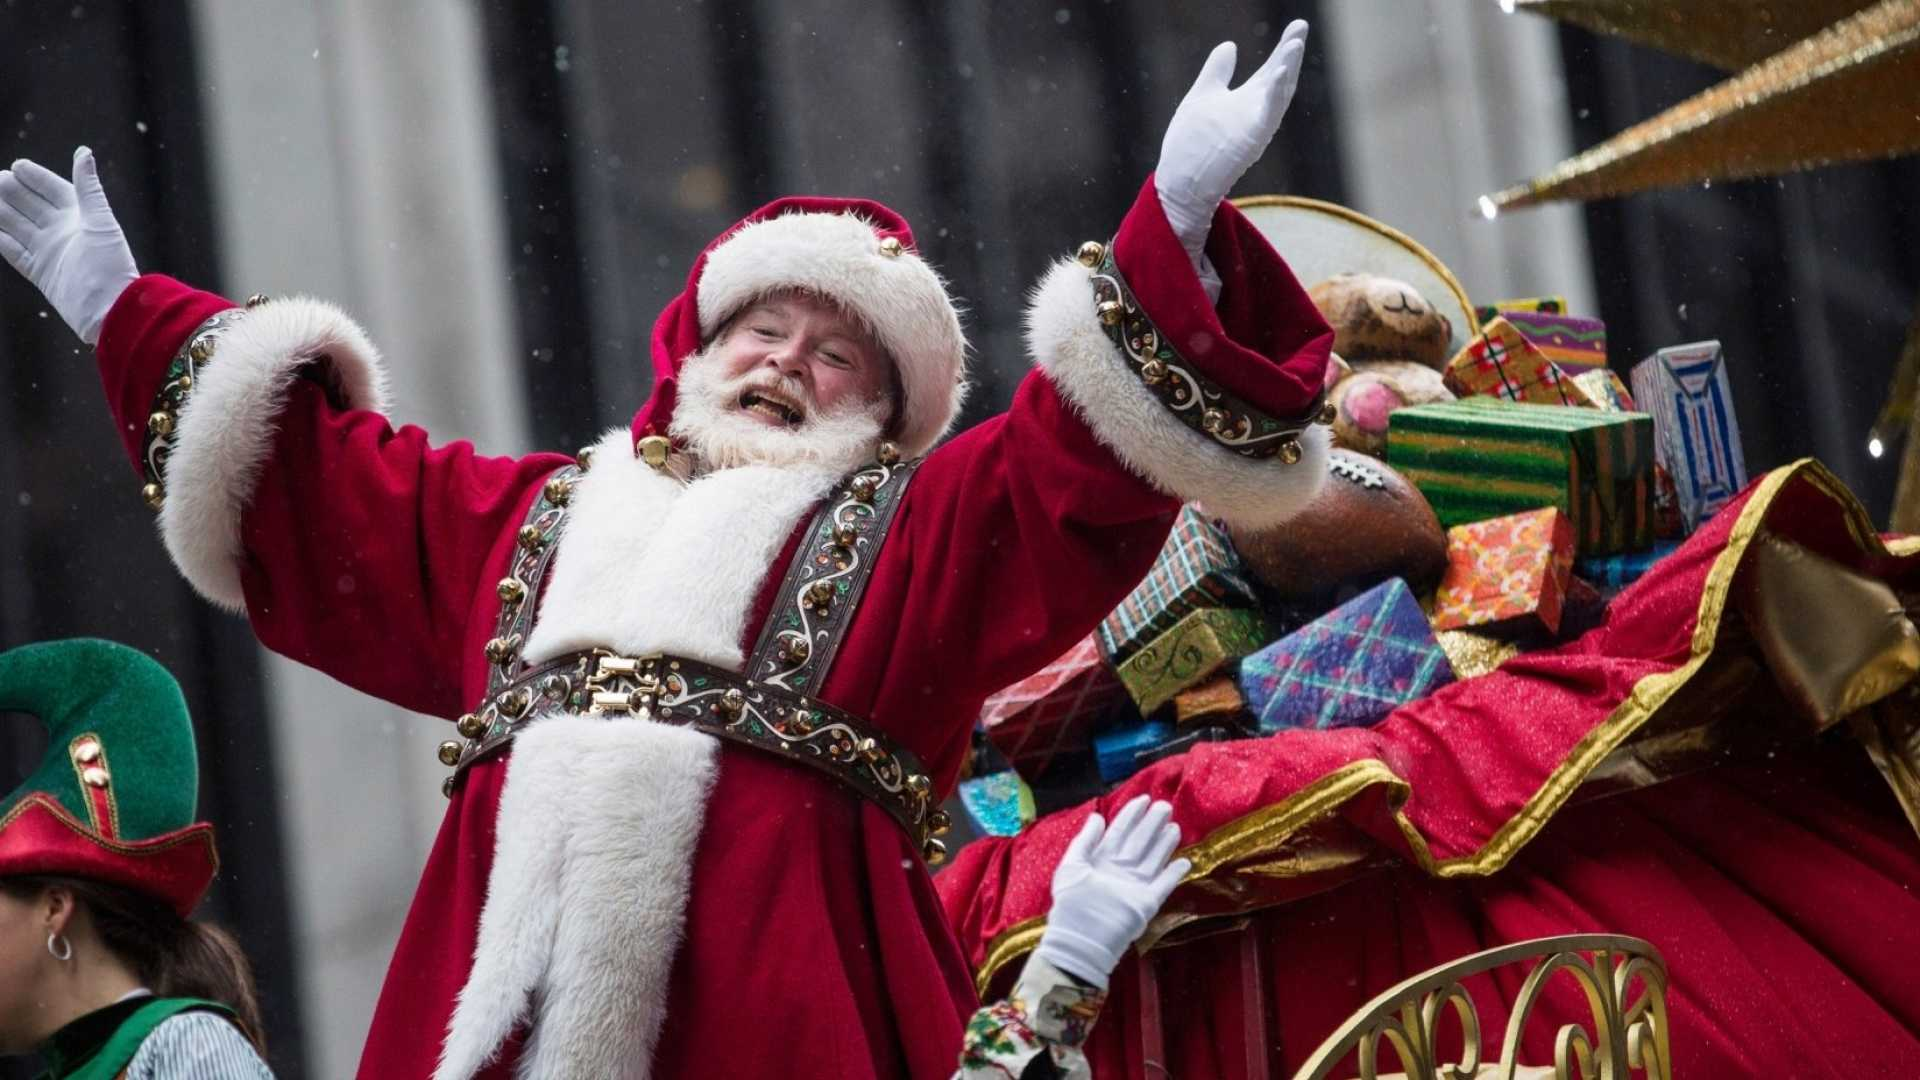 Your Local Santa Claus Might Be the Hardest Working Entrepreneur You Know--Especially If He Attended This Santa School